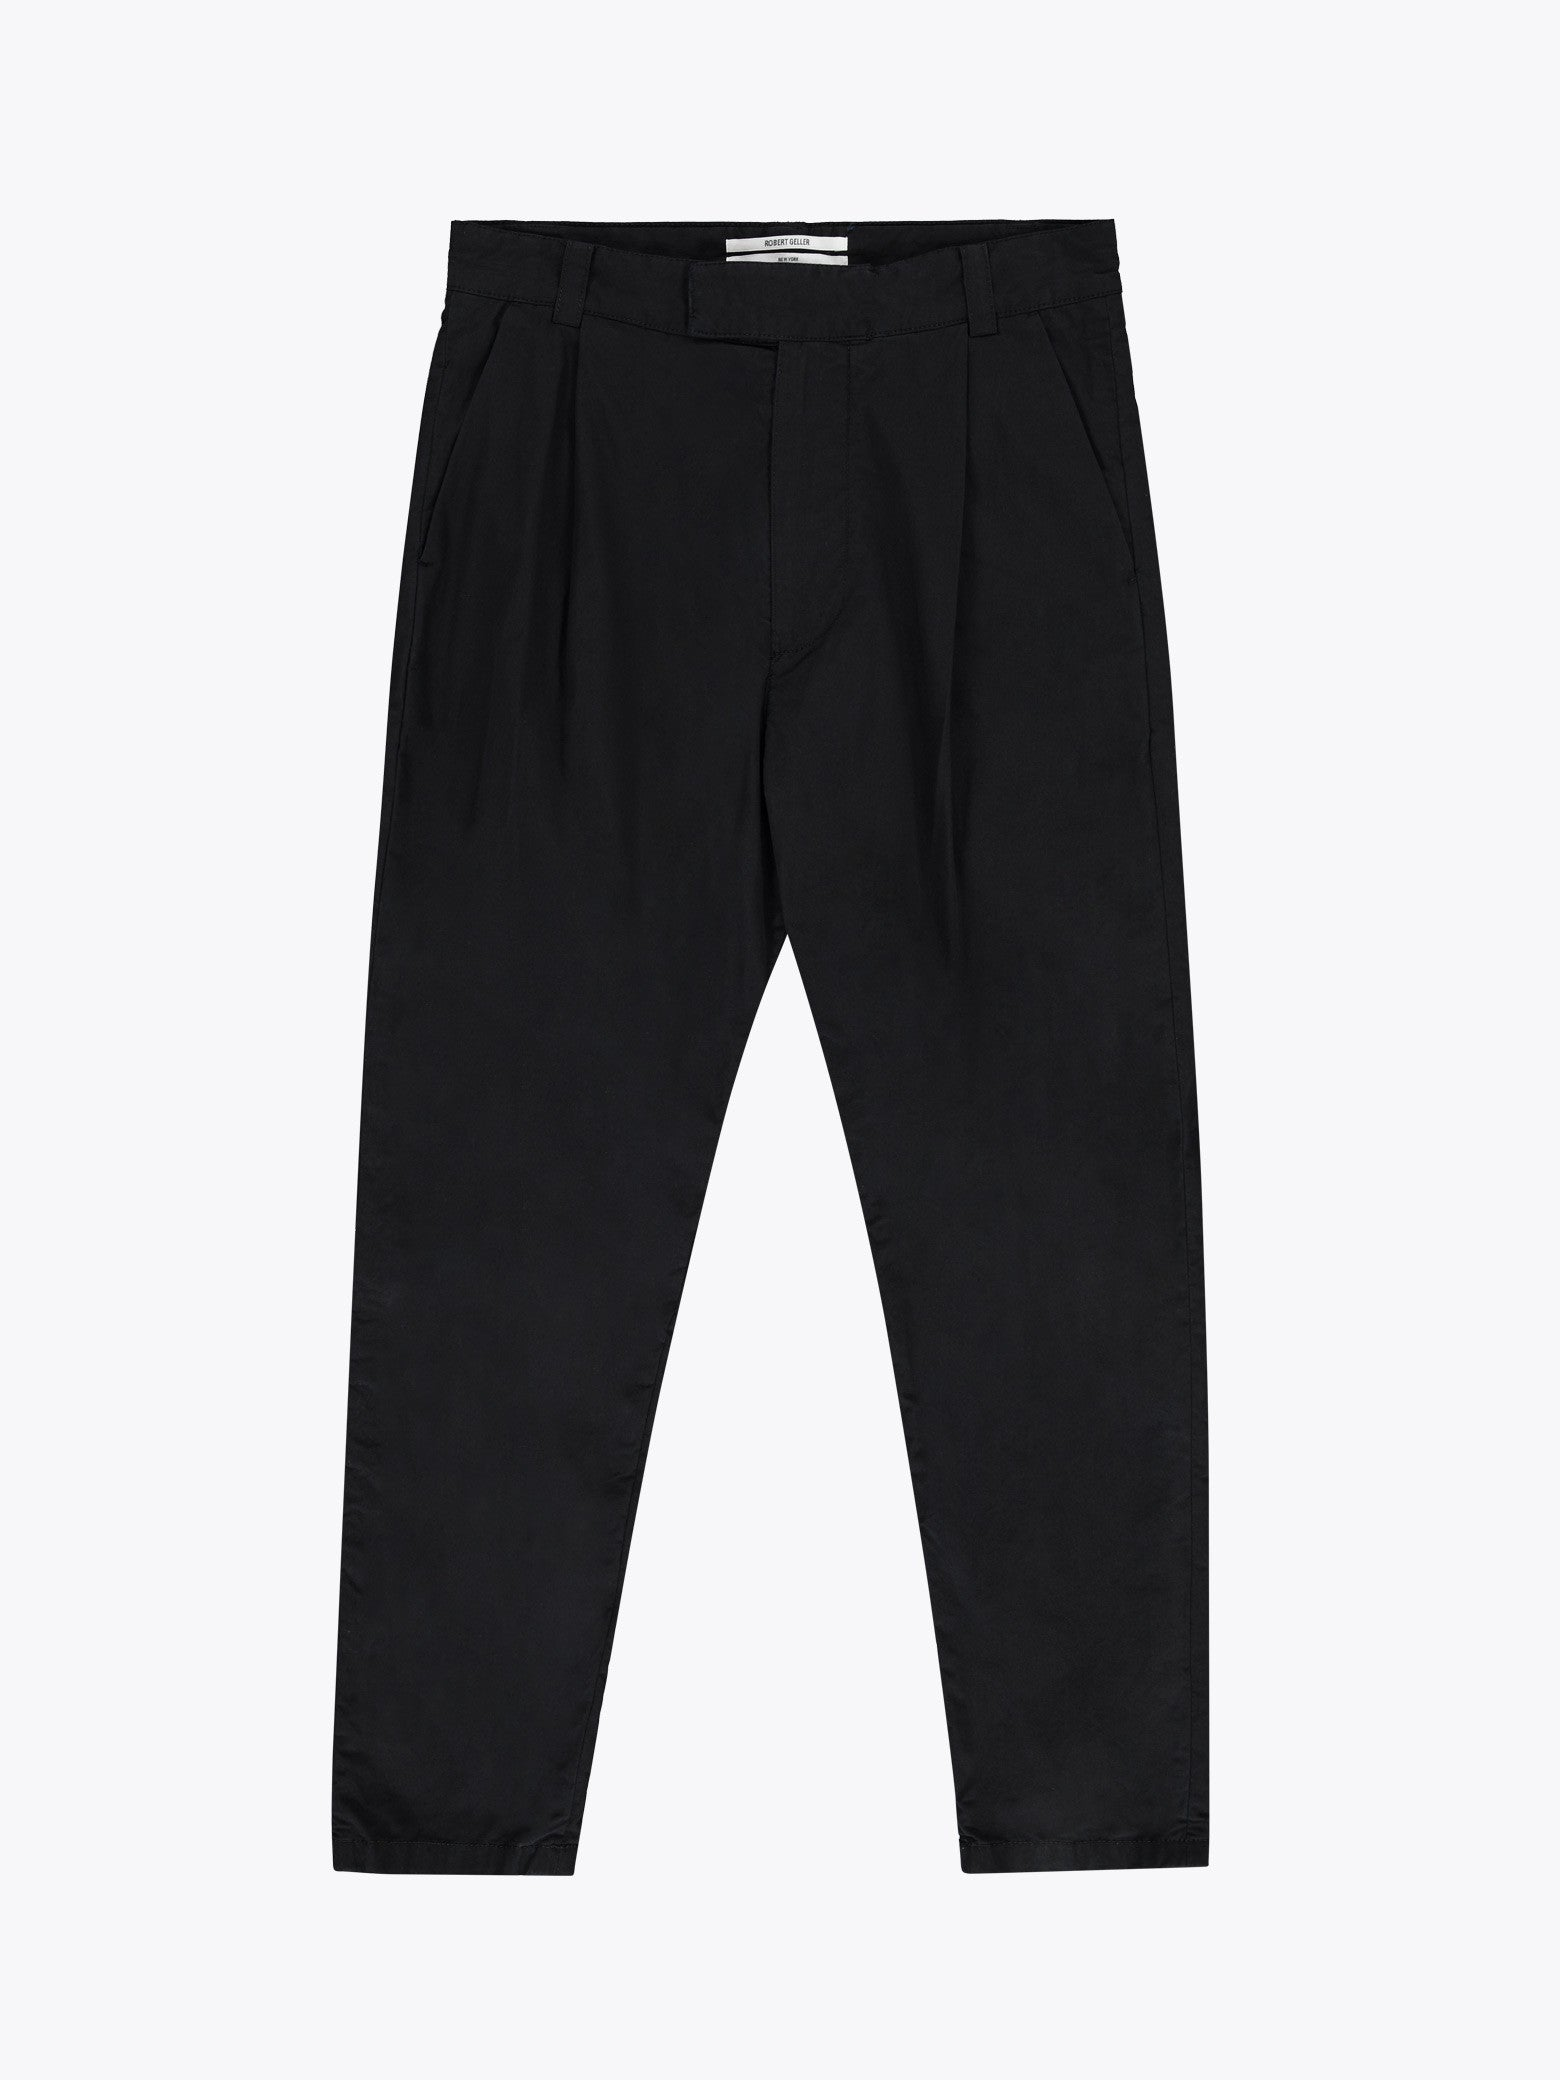 The Enzyme Wash Pant